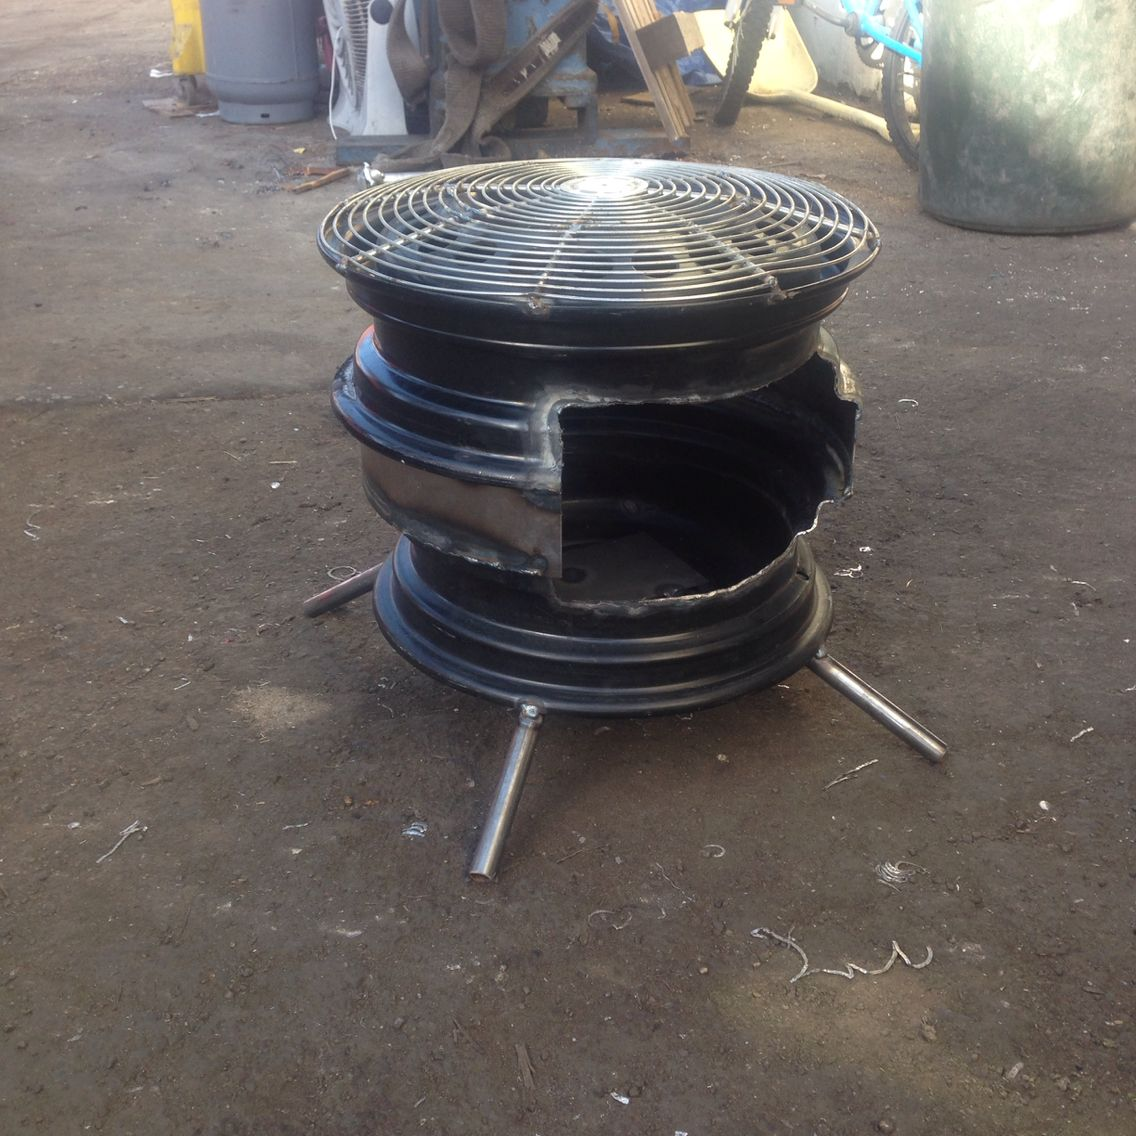 Camp stove heater fire pit made from two space saver